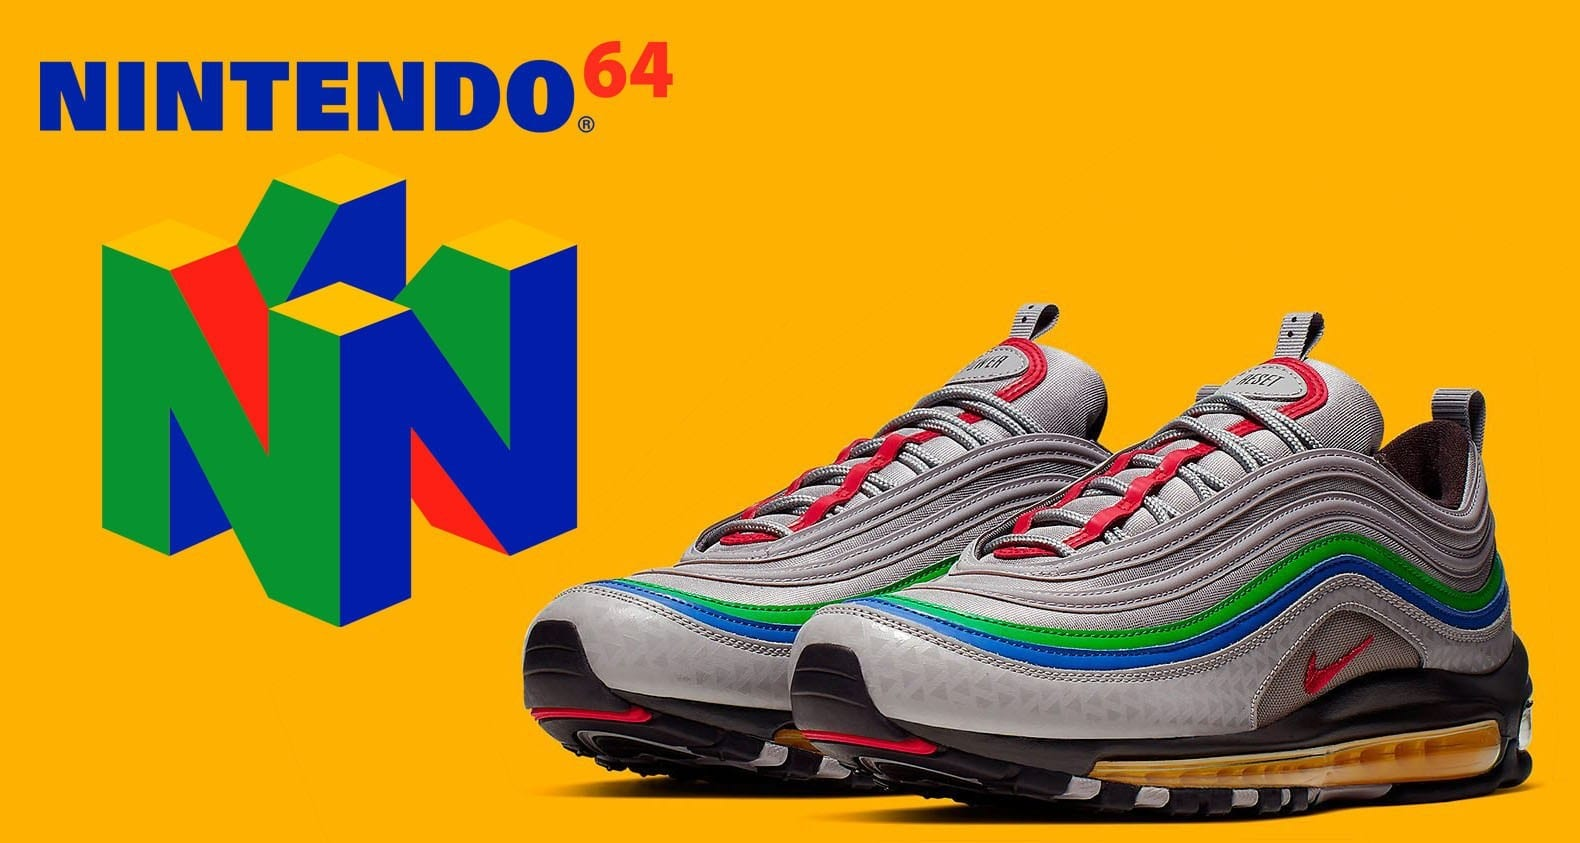 Nike Honors the Iconic Nintendo 64 with a Special Edition Air Max 97